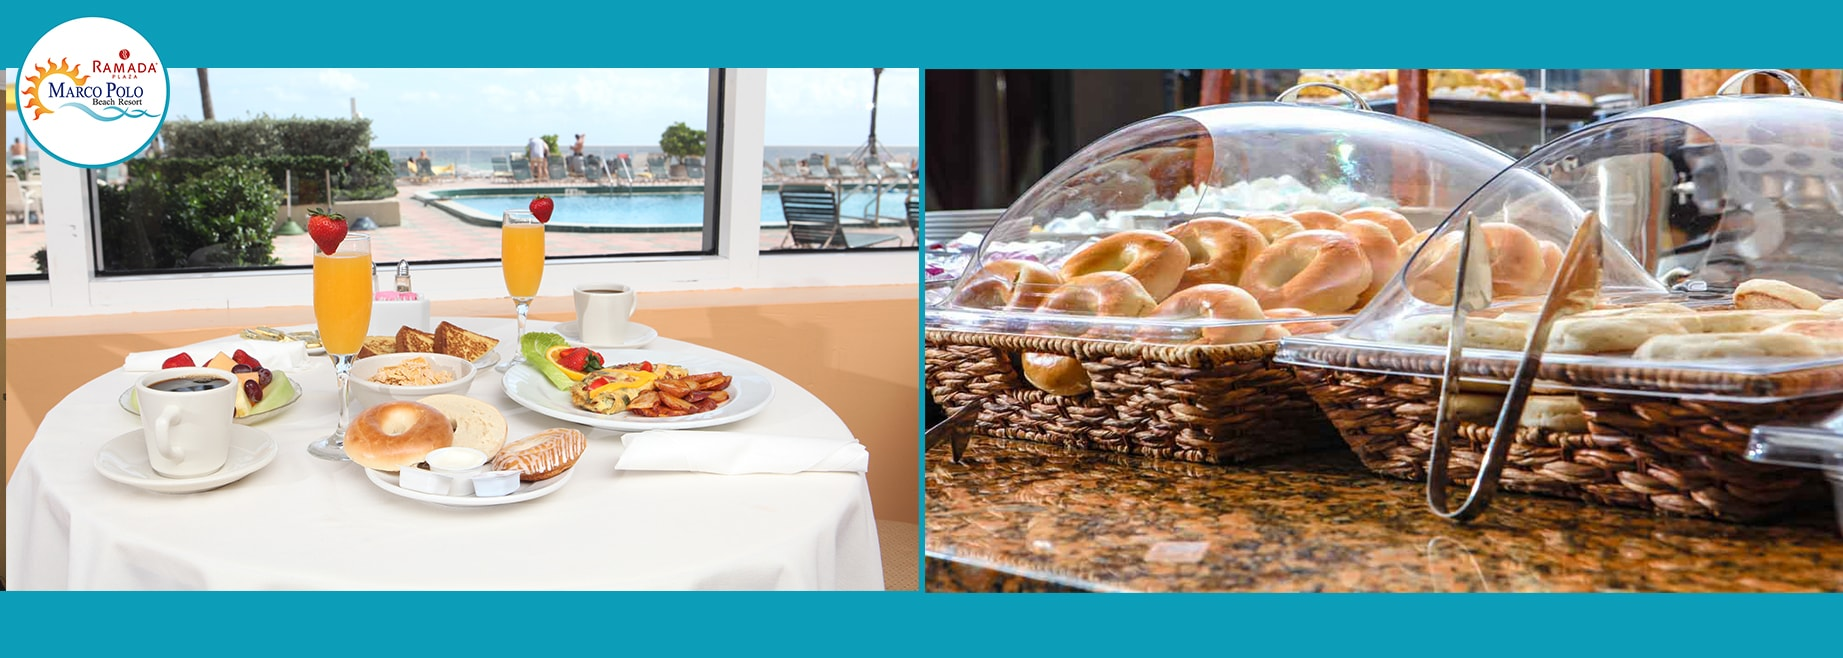 Split view of breakfast food items at the Marco Polo Beach Resort